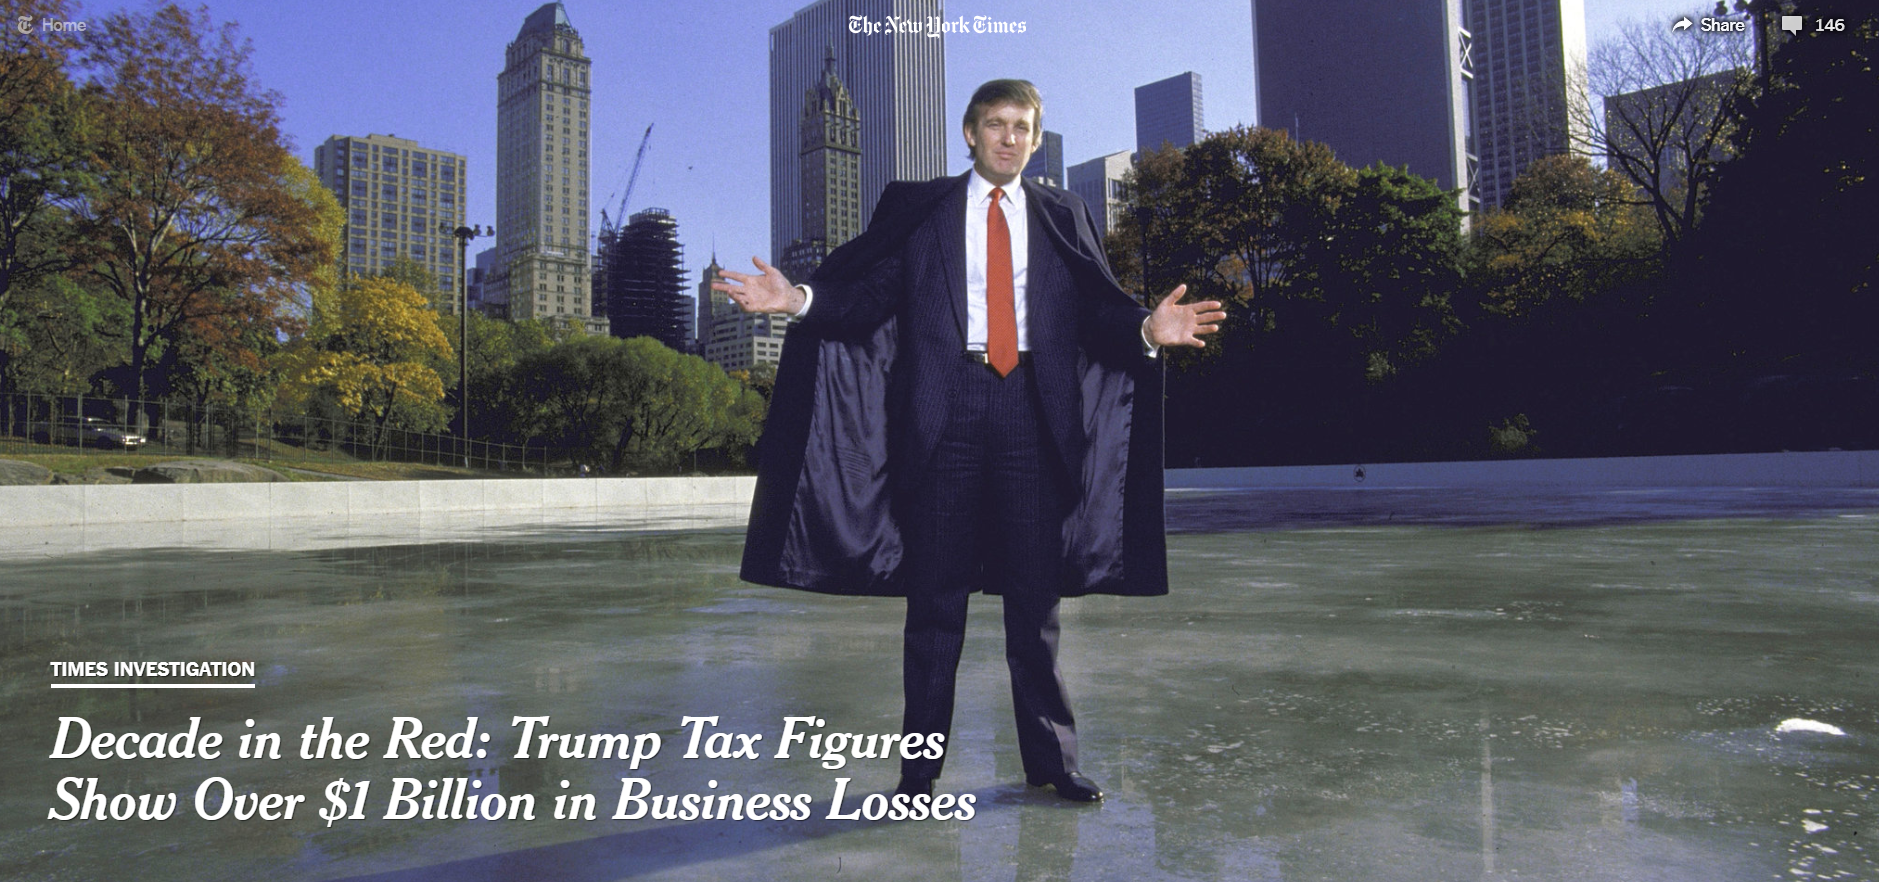 Donald J. Trump in 1986, during a tumultuous period of his career marked by acquisition and collapse.  [Photo: Ted Thai/The LIFE Picture Collection, via Getty Images]